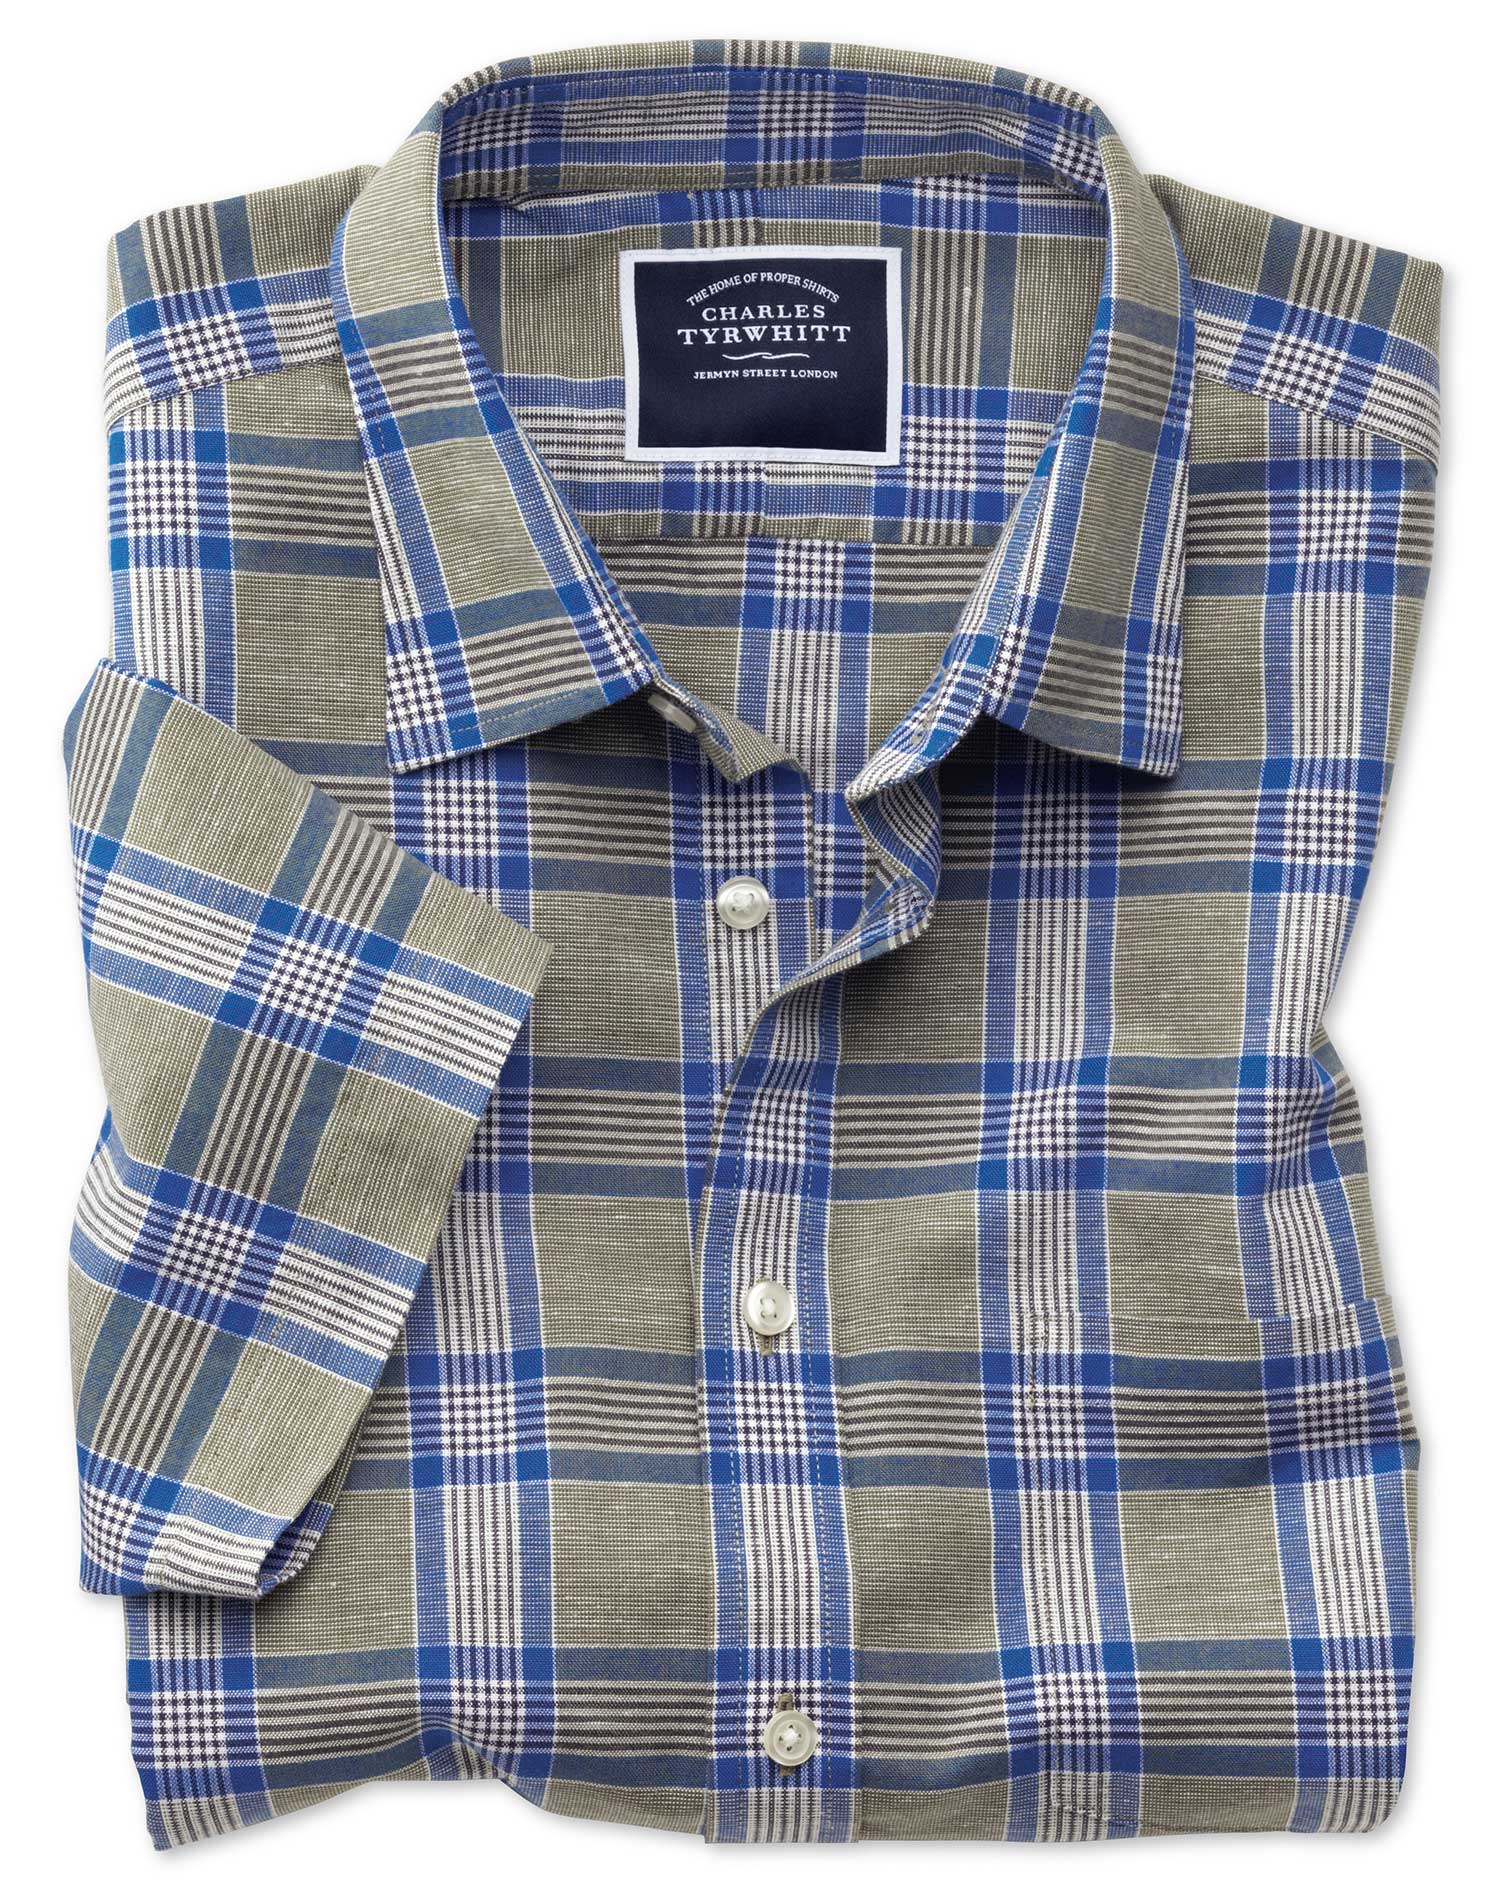 Classic Fit Cotton Linen Short Sleeve Khaki Check Shirt Single Cuff Size XXXL by Charles Tyrwhitt